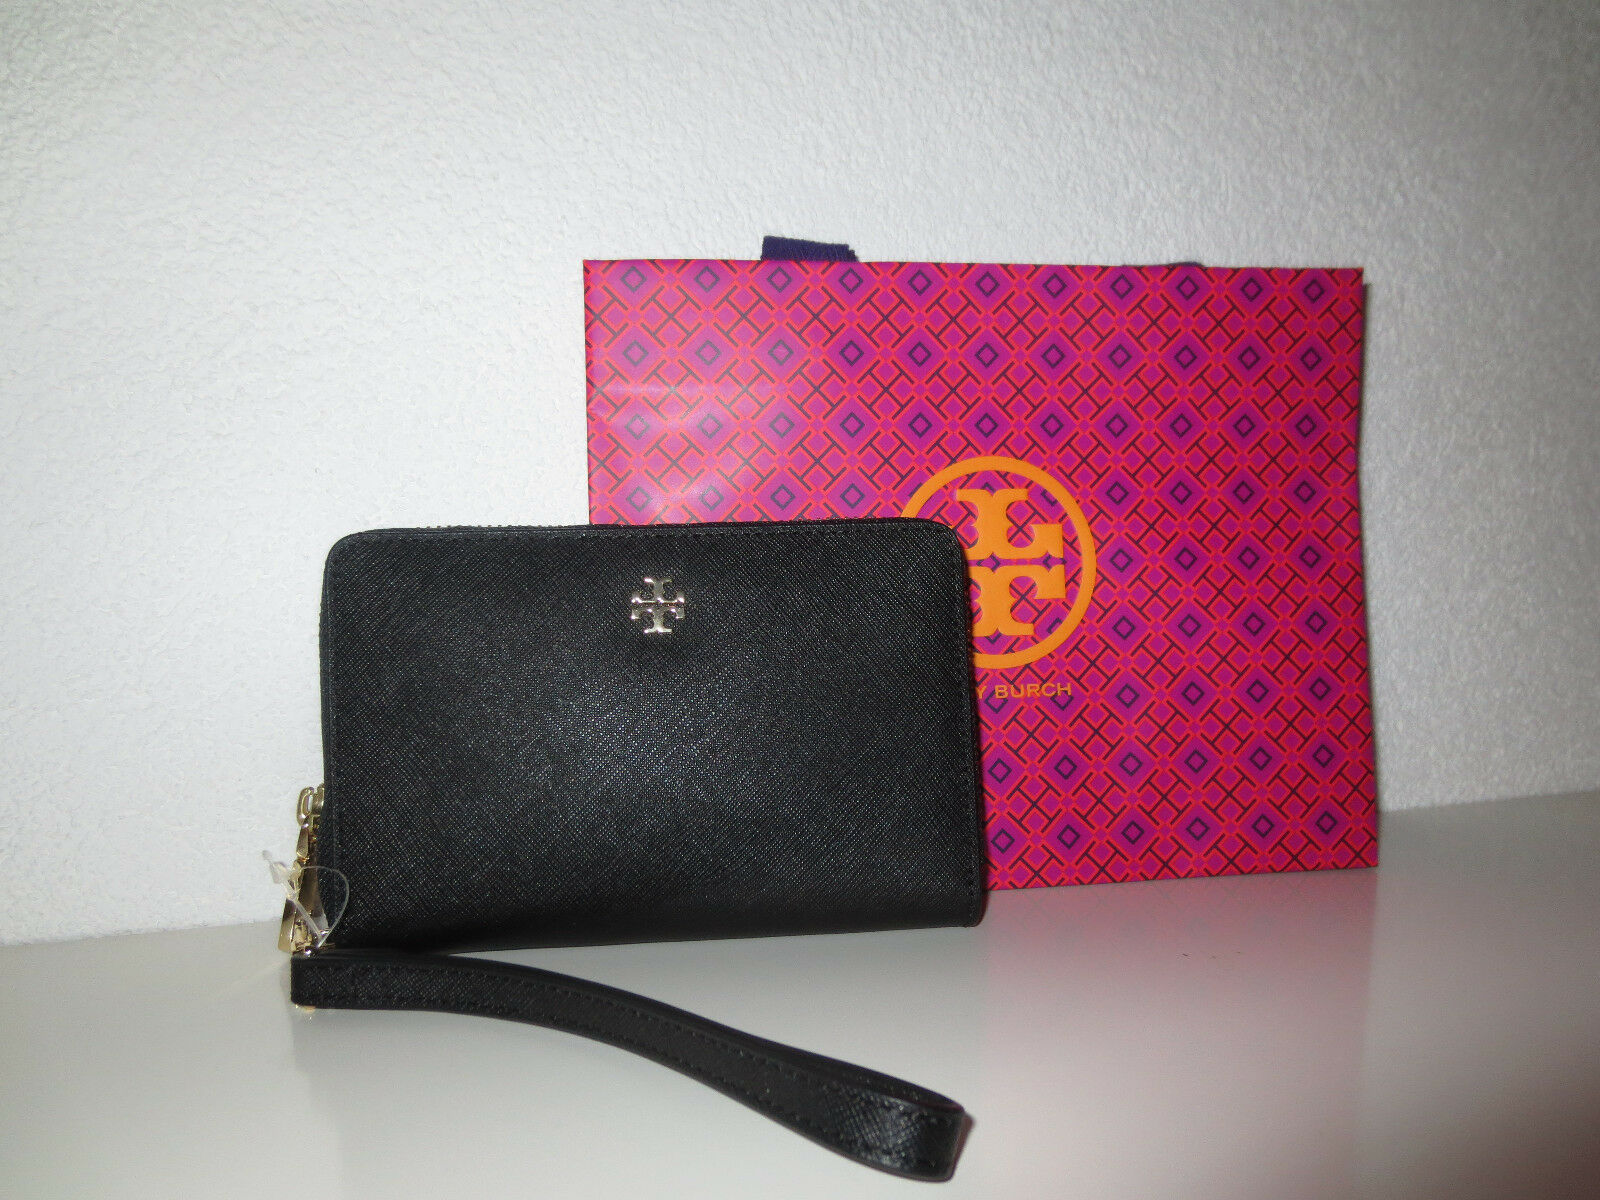 tory burch geldb rse york schwarz phone case portemonnaie wallet geldbeutel eur 69 00. Black Bedroom Furniture Sets. Home Design Ideas